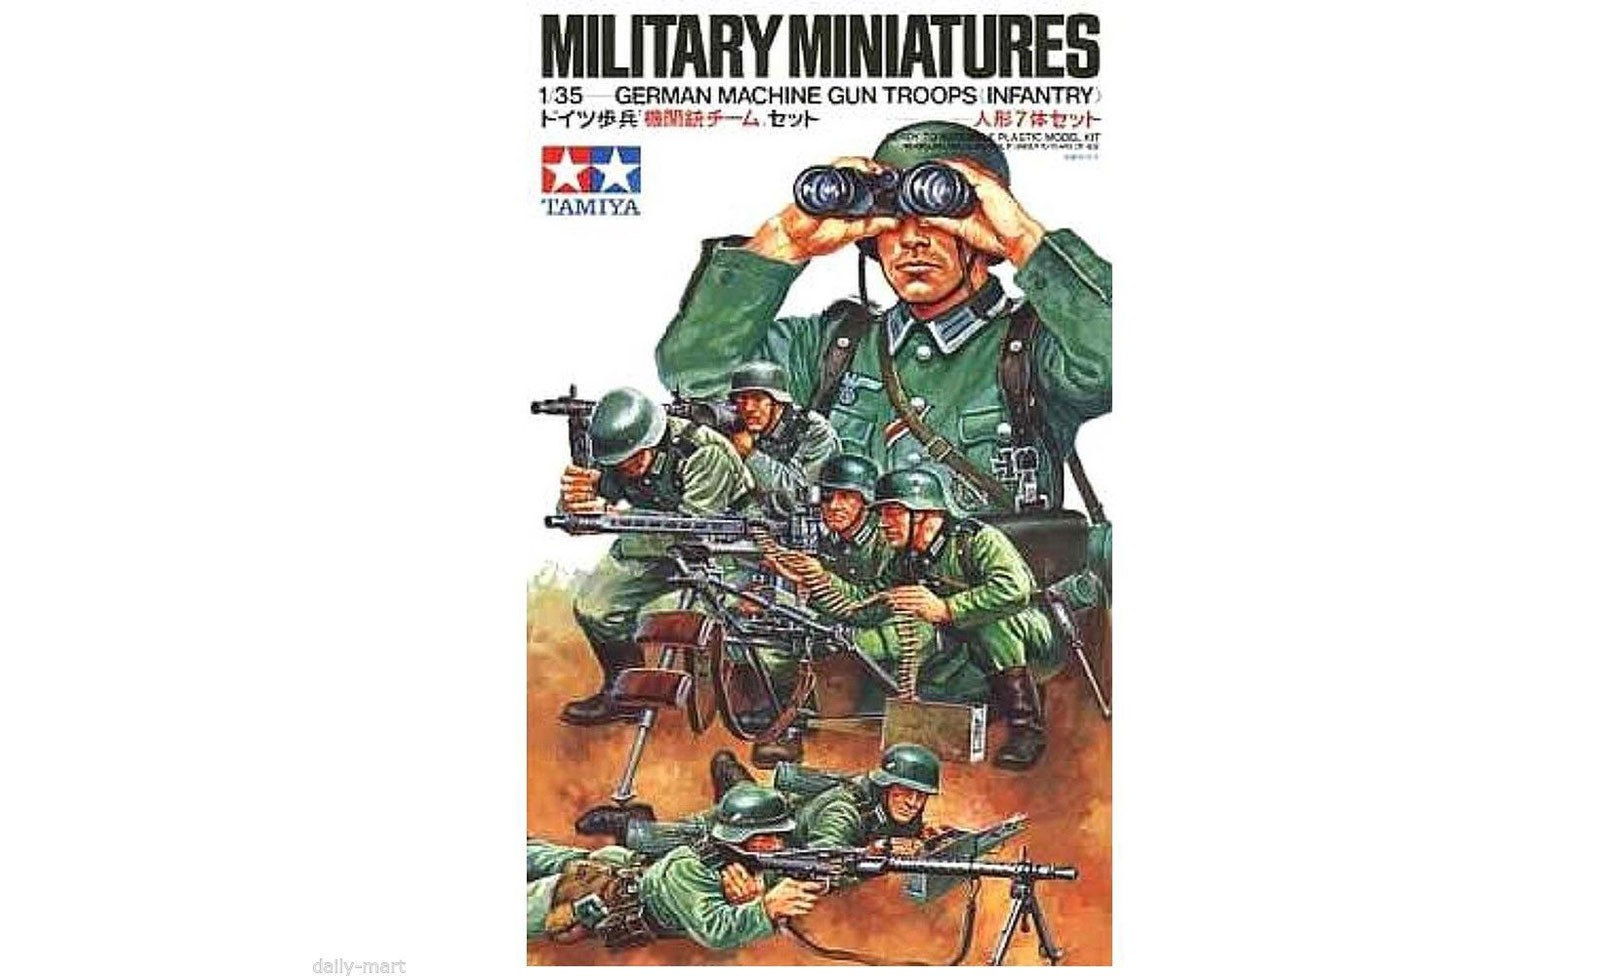 German Machine Gun Troops Kit - Tamiya 35038 - plastic model kit - 1/35 scale